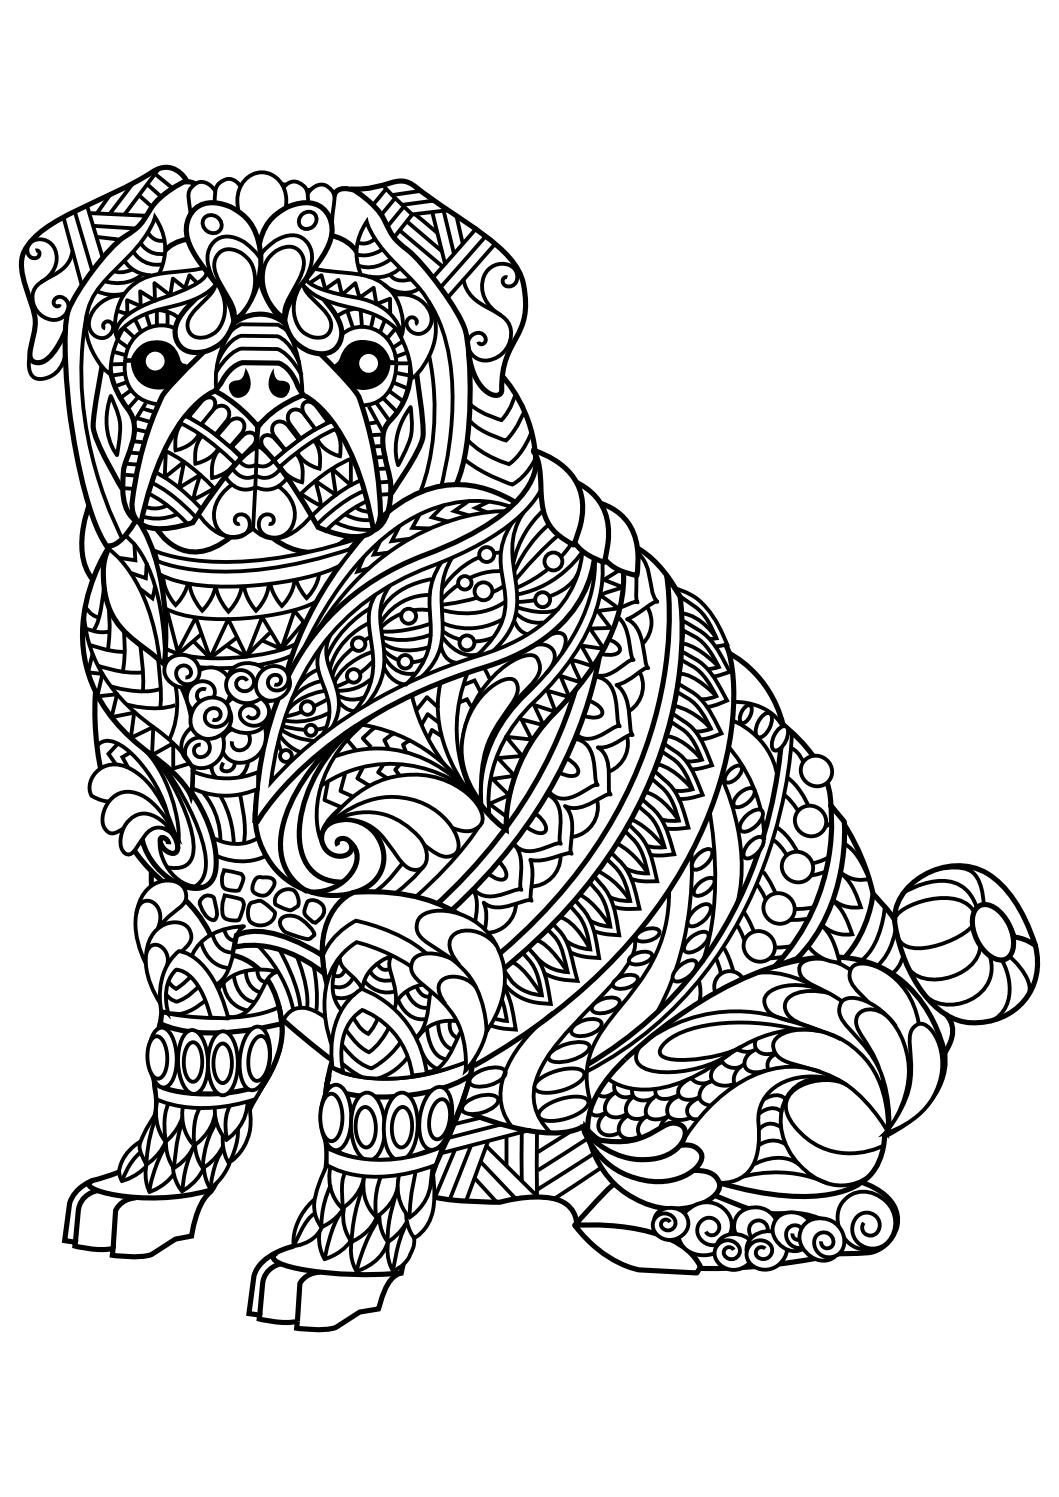 Stress relieving cats coloring - Animal Coloring Pages Pdf